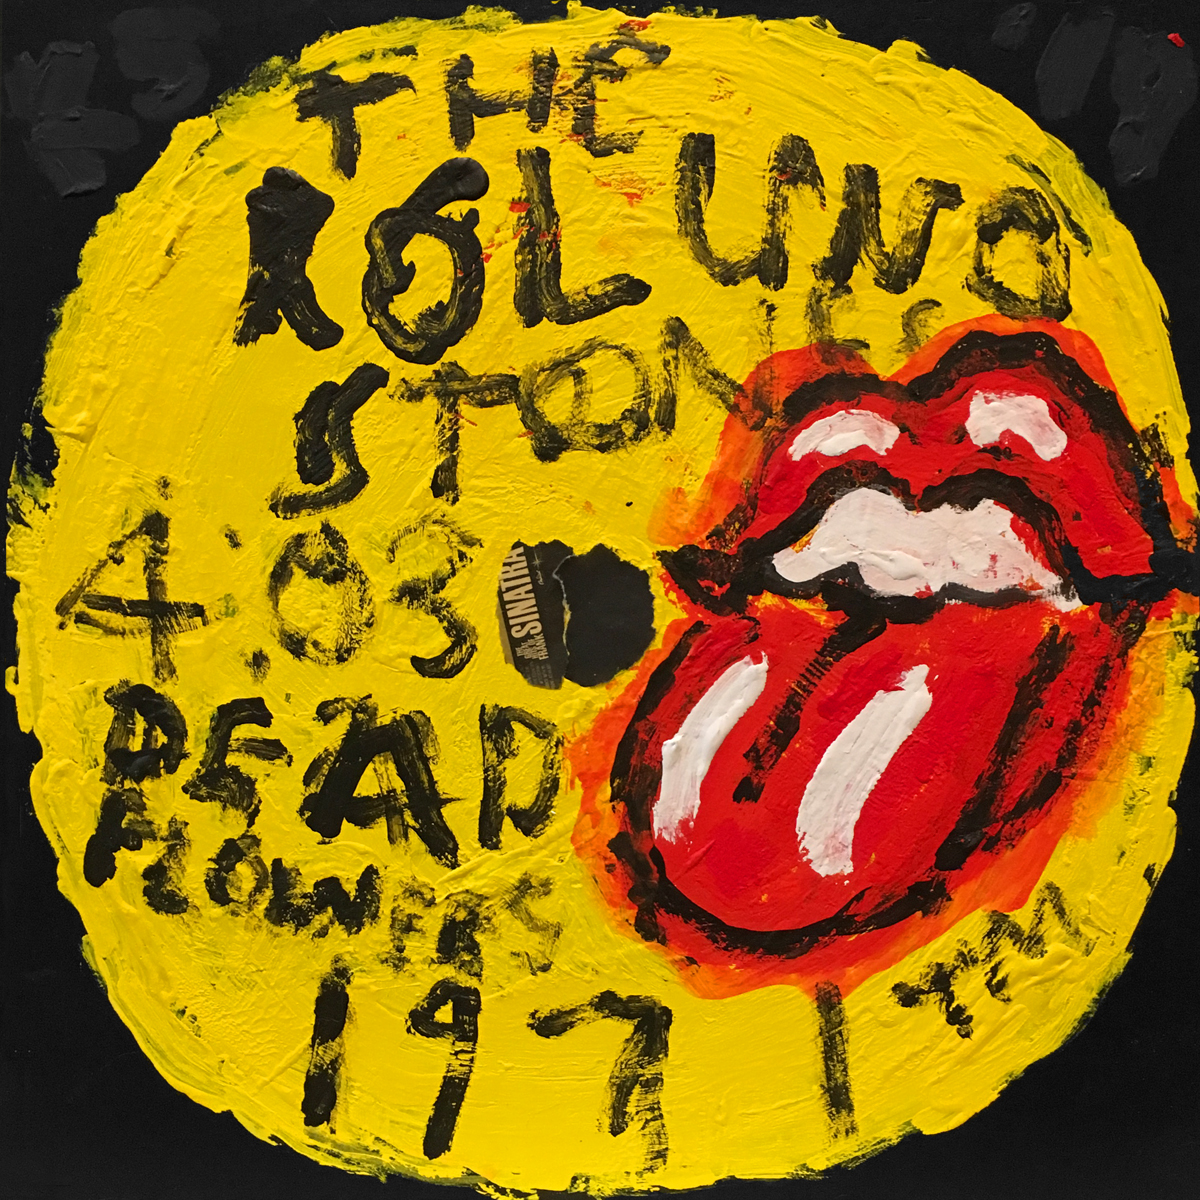 The Rolling Stones / Dead flowers